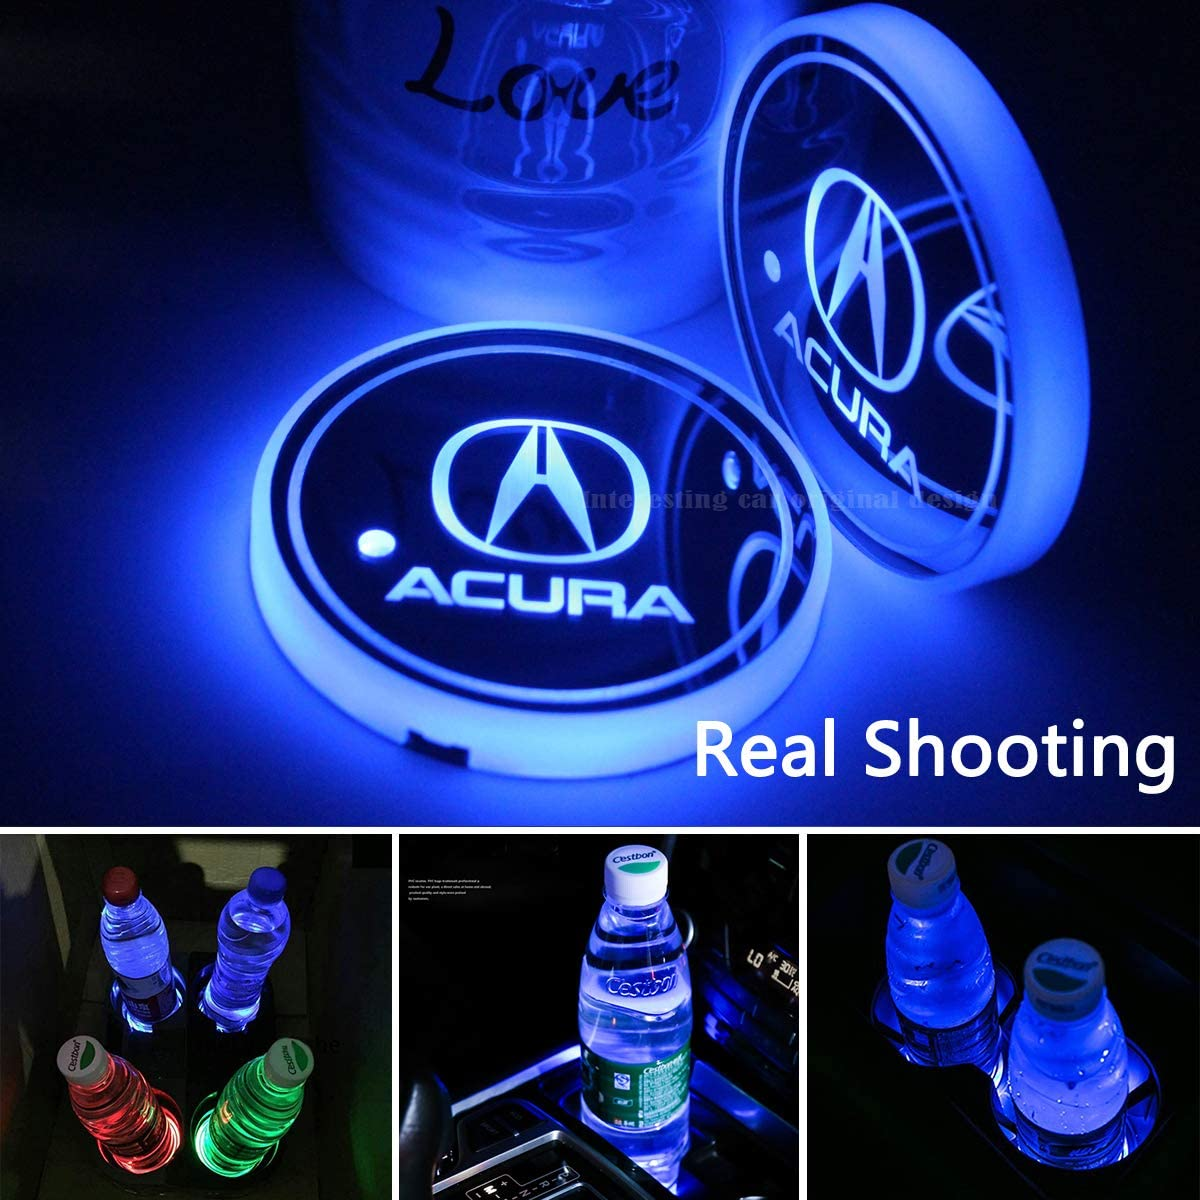 2pcs LED Car Cup Holder Lights for Acura,7 Colors Changing USB Charging Mat Luminescent Cup Pad, LED Interior Atmosphere Lamp